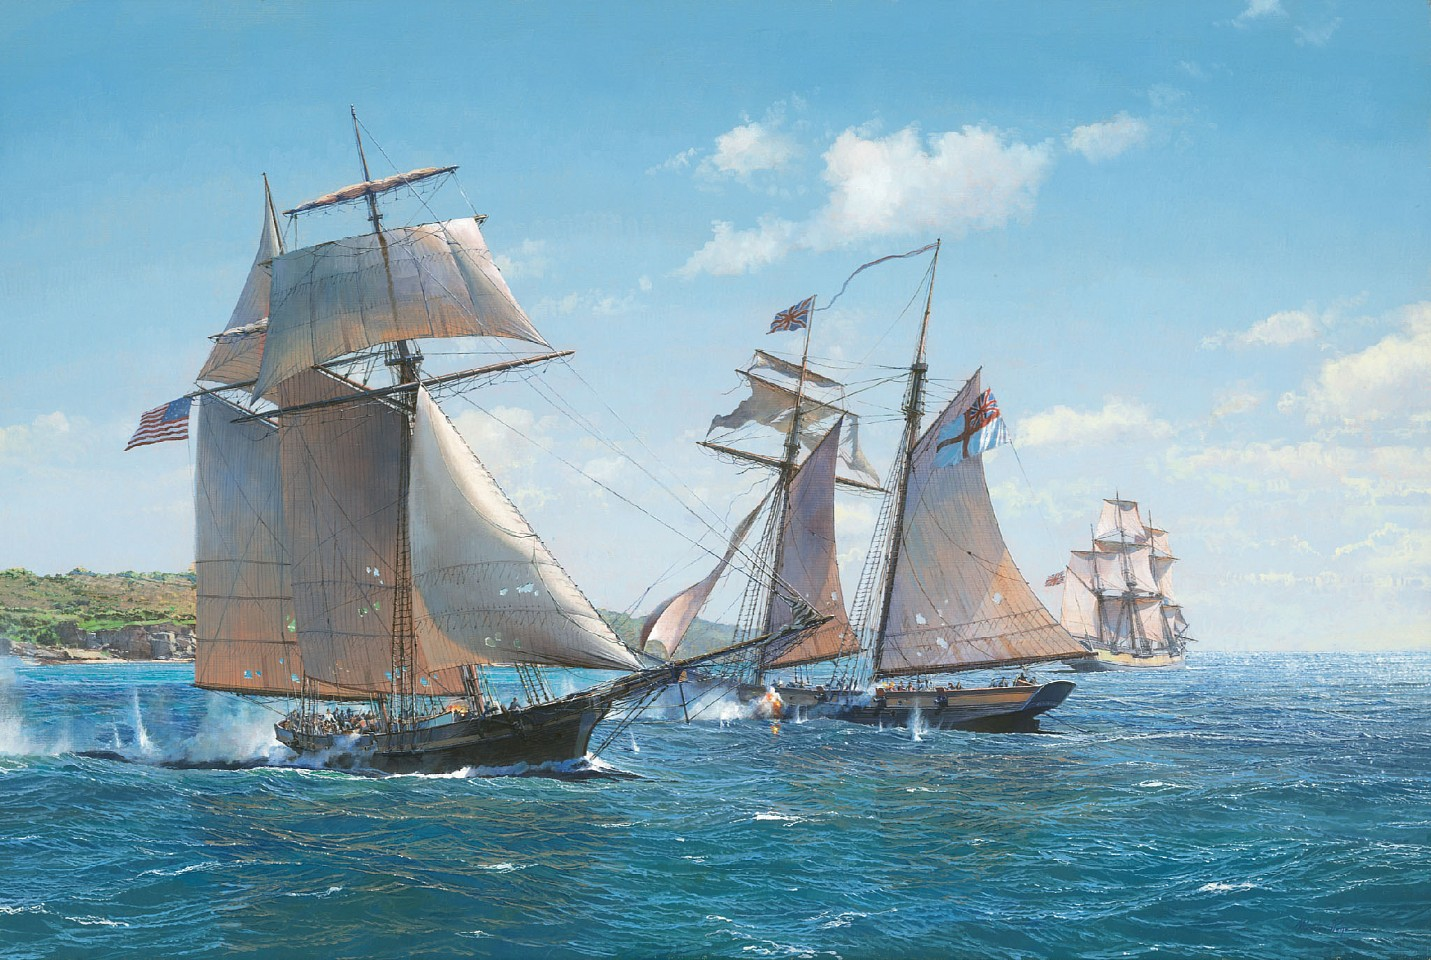 Maarten Platje ,   Victory at Bermuda, the Capture of HMS Dominica by American Privateer Decatur  ,  2018     oil on linen ,  23 5/8 x 35 7/16 in. (60 x 90 cm)     MP181013